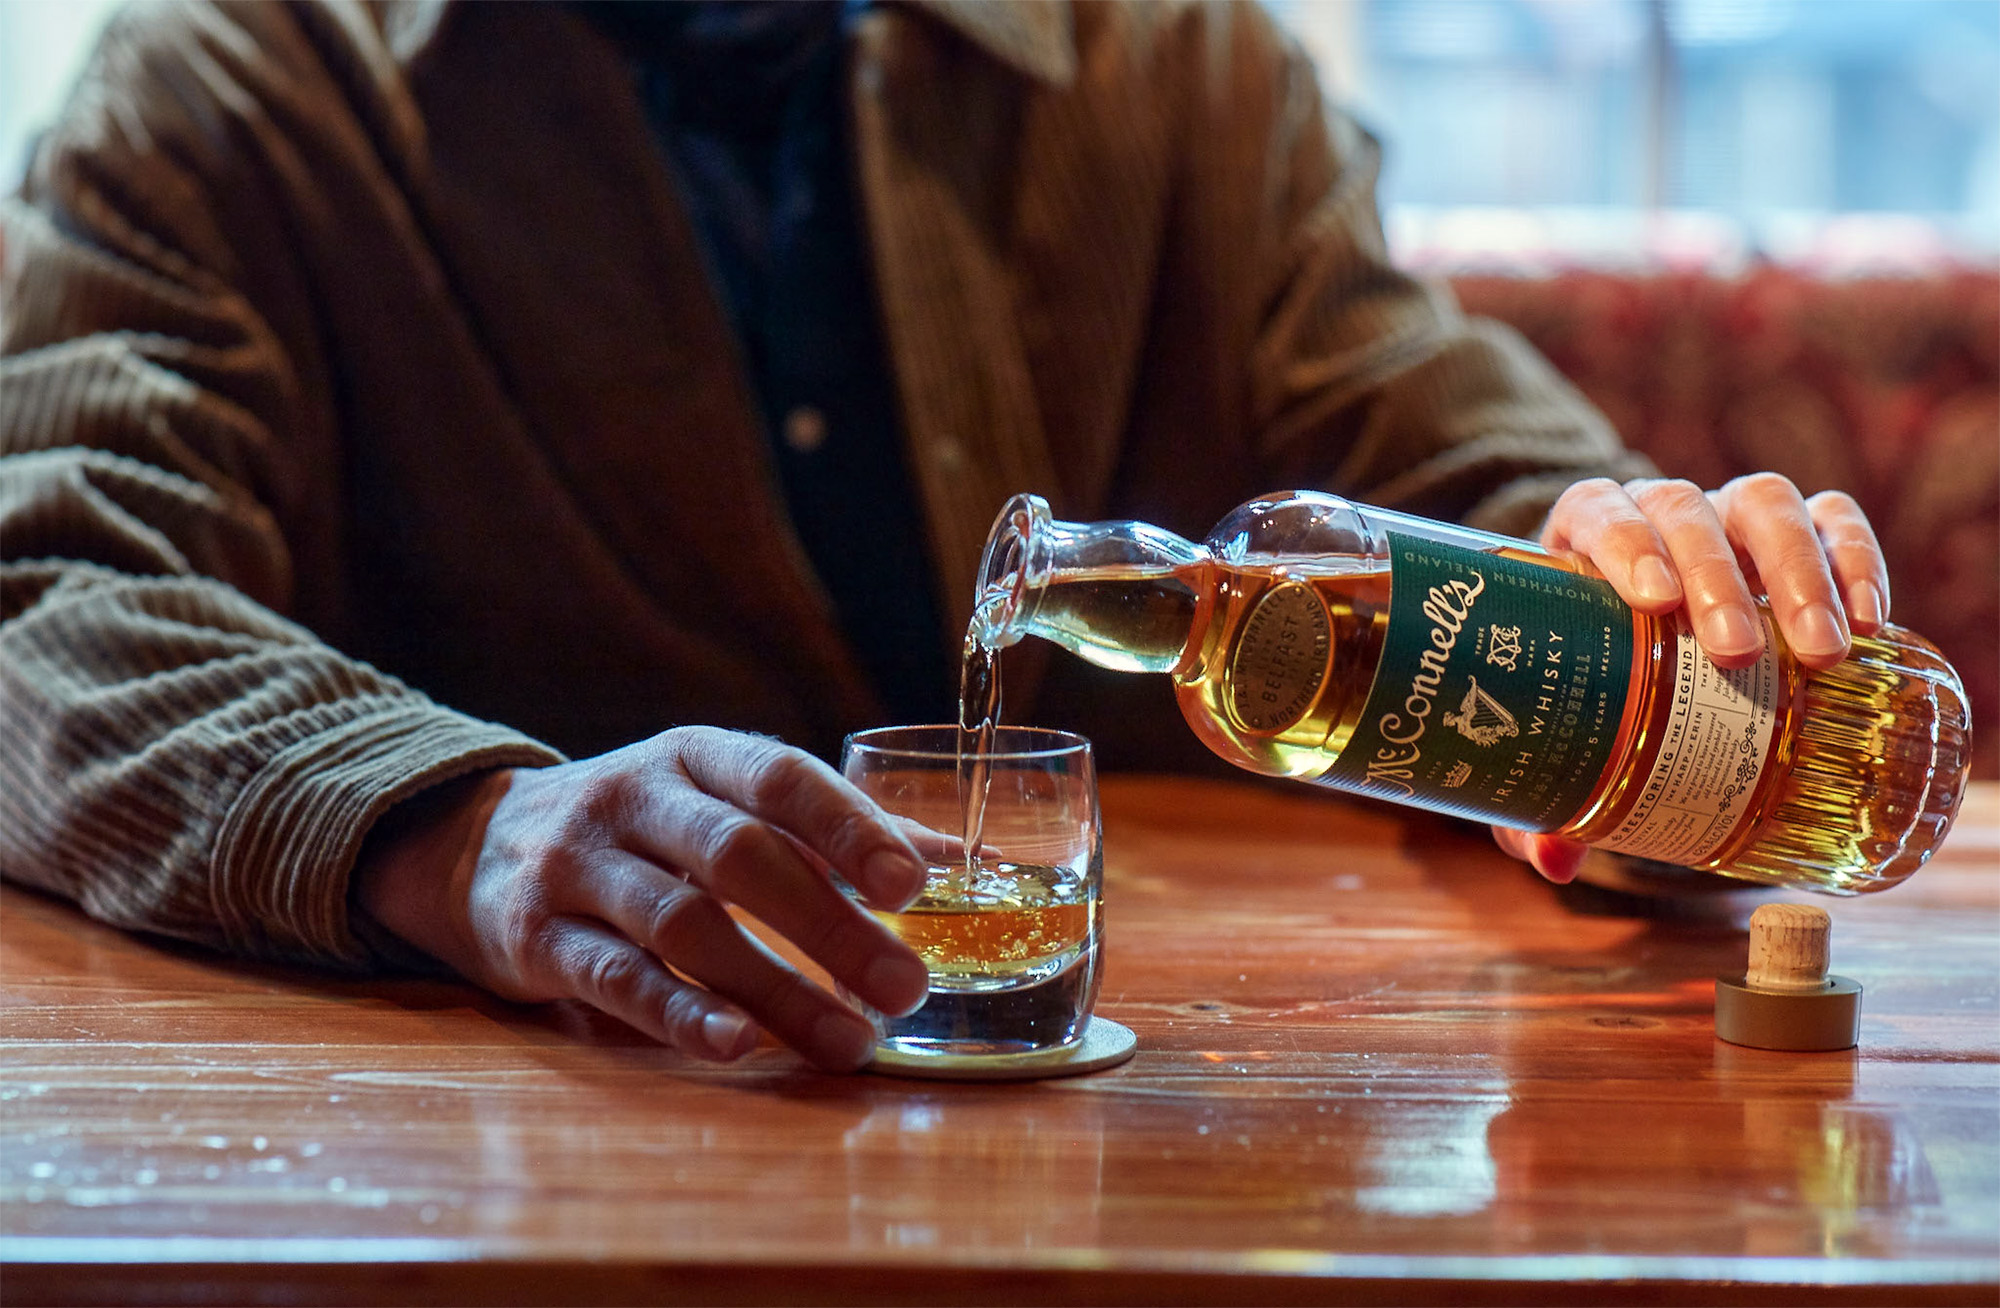 Conecuh Brands is bringing J.&J. McConnell's Irish Whisky Back